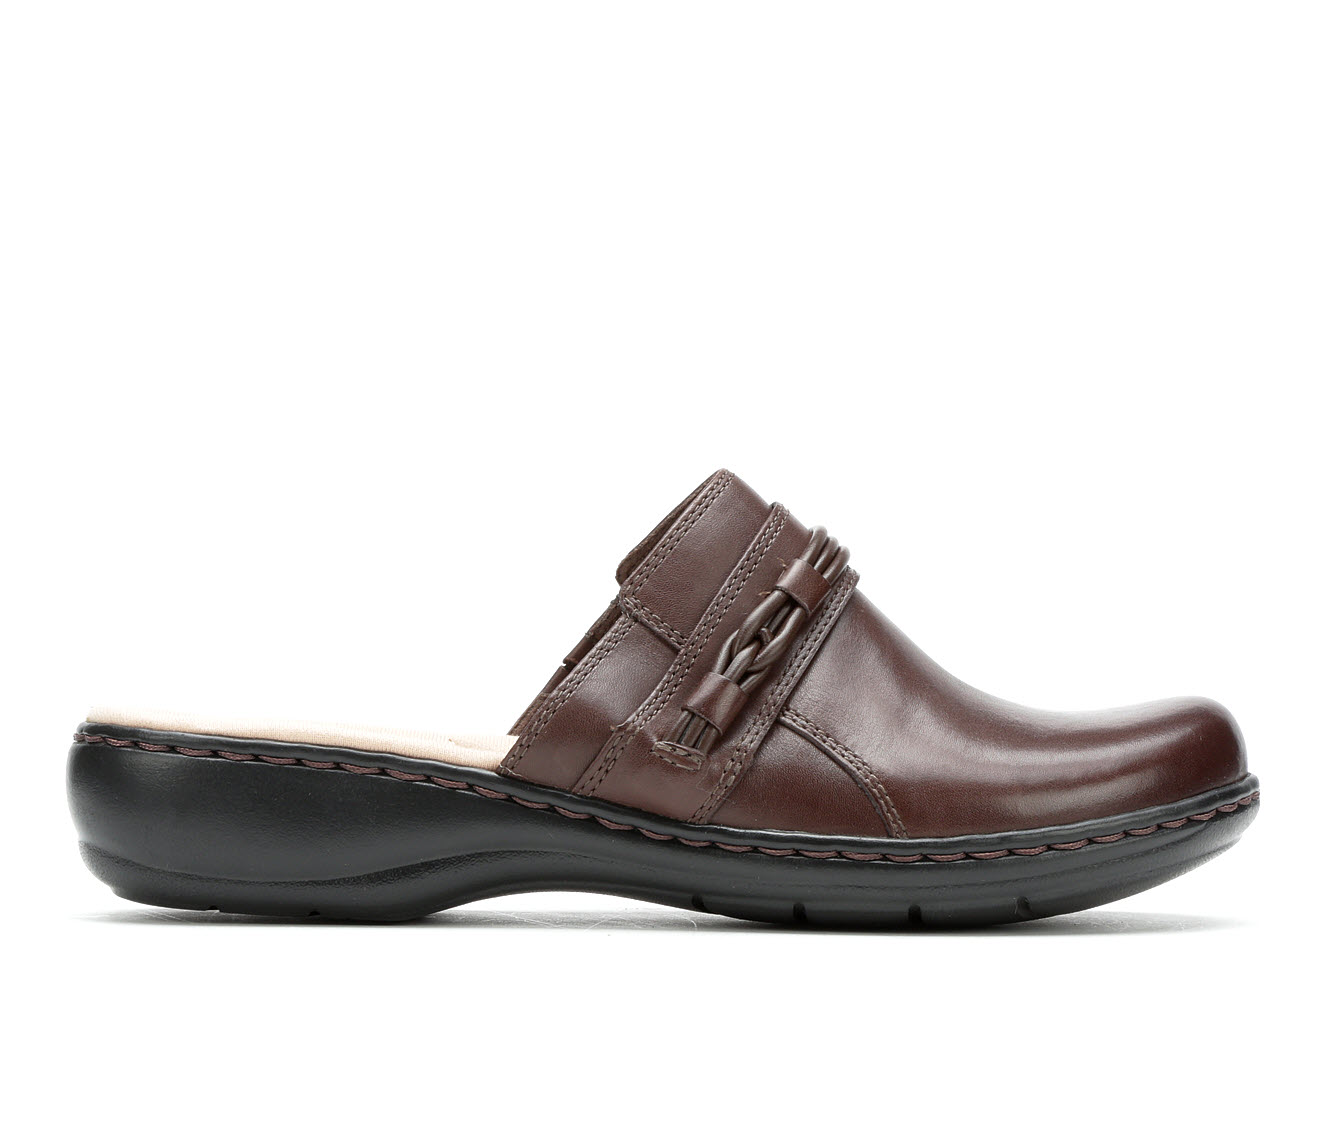 Clarks Leisa Clover Women's Shoe (Brown Leather)